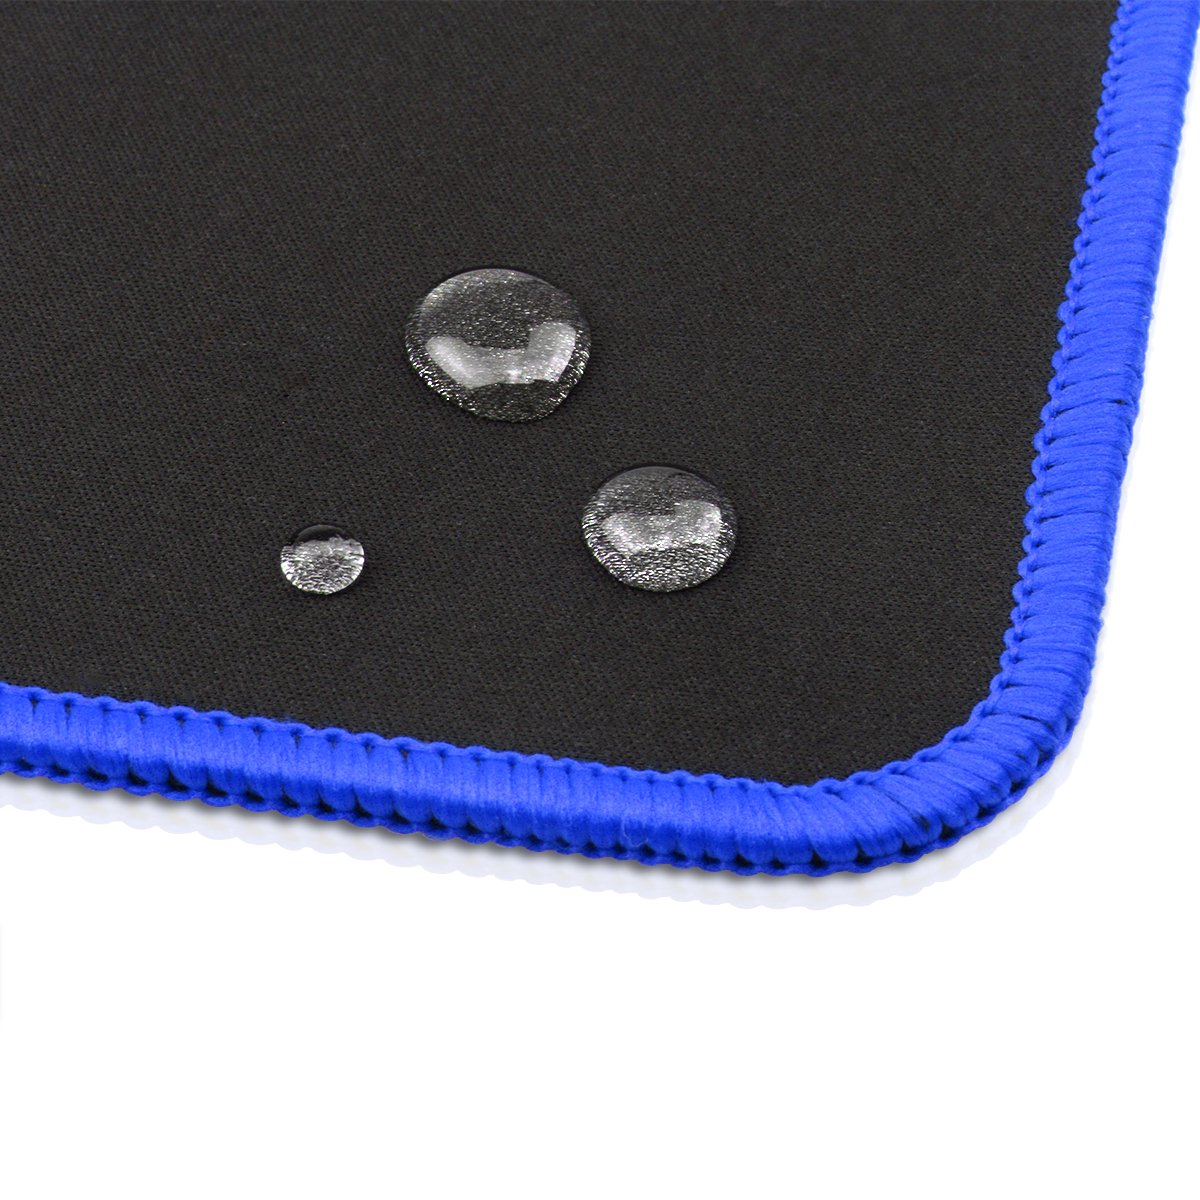 Gaming Mouse Pad, Topoint Extended Large Mouse and Keyboard Mat Soft+Waterproof+Anti Slip for Hardcore Gamer-78 * 30 cm (Blue)